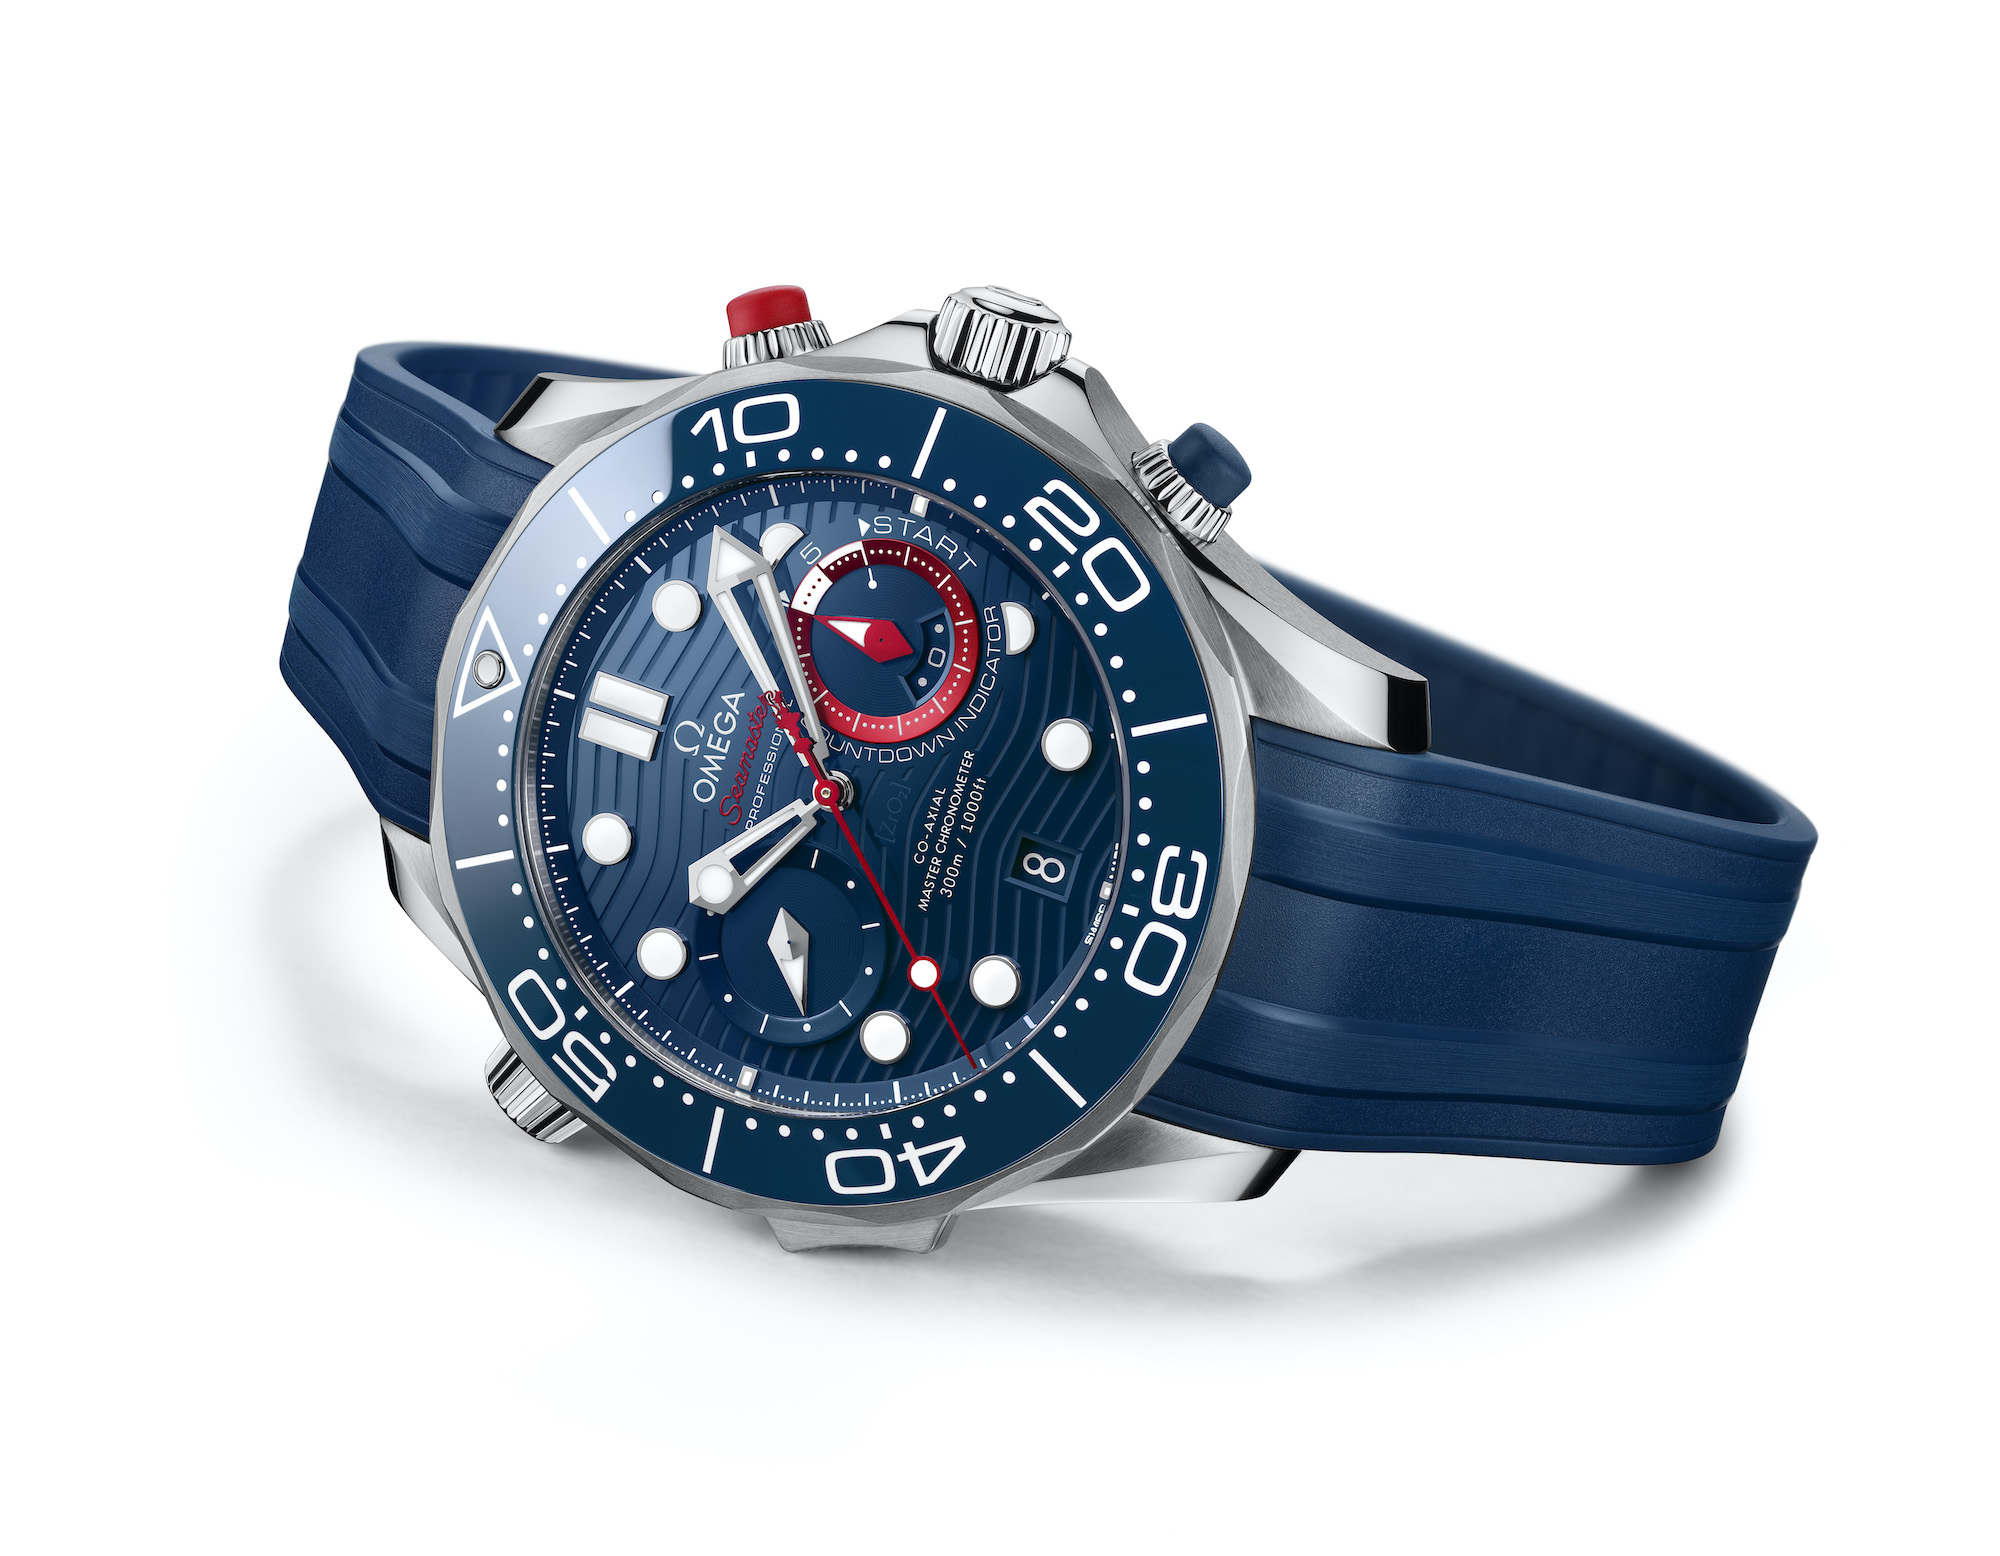 Omega Seamaster Diver 300M Americas Cup Chronograph 210.30.44.51.03.002